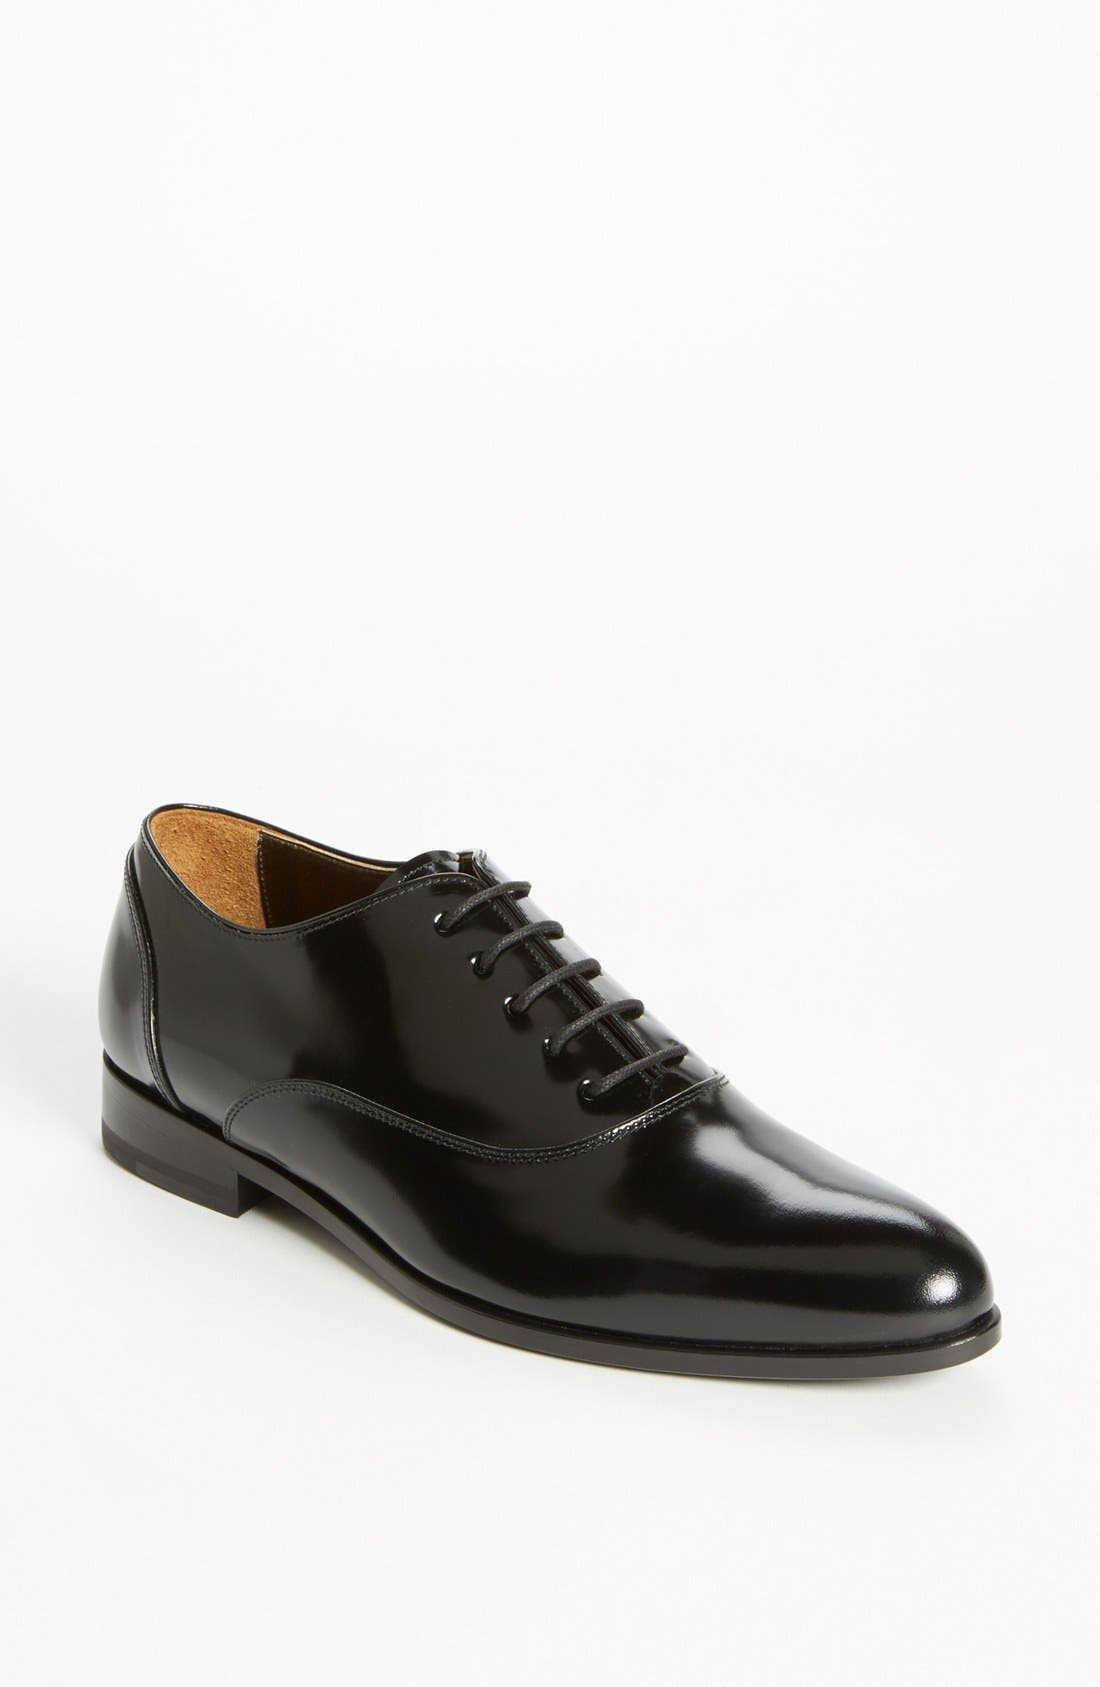 Alternate Image 1 Selected - Lanvin 'Boyish' Oxford Flat